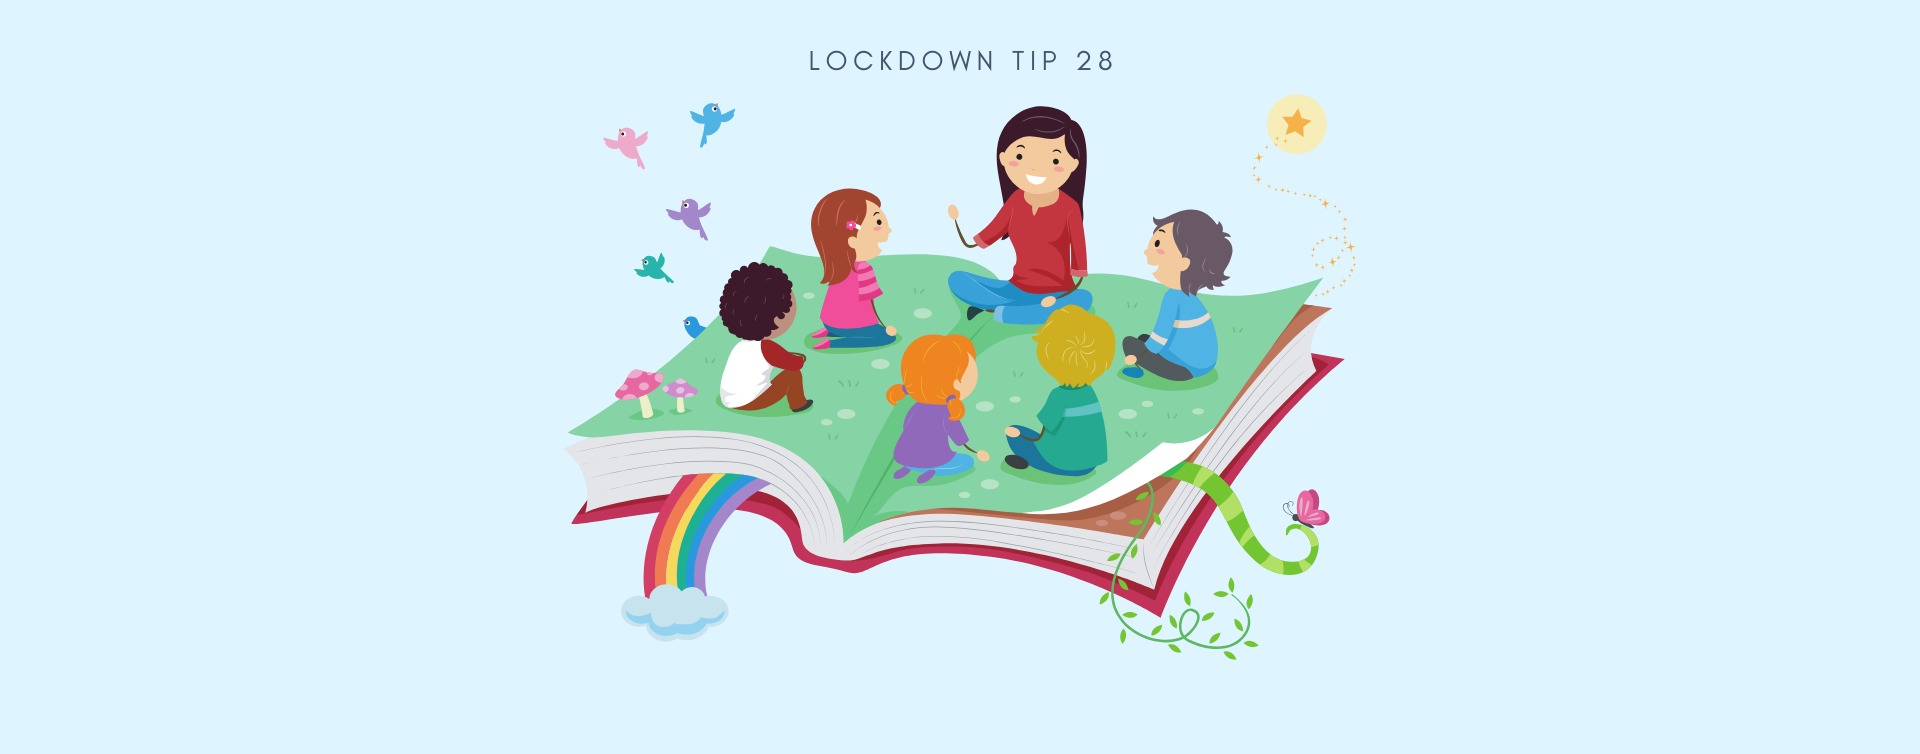 MCSA Lockdown Tip 28